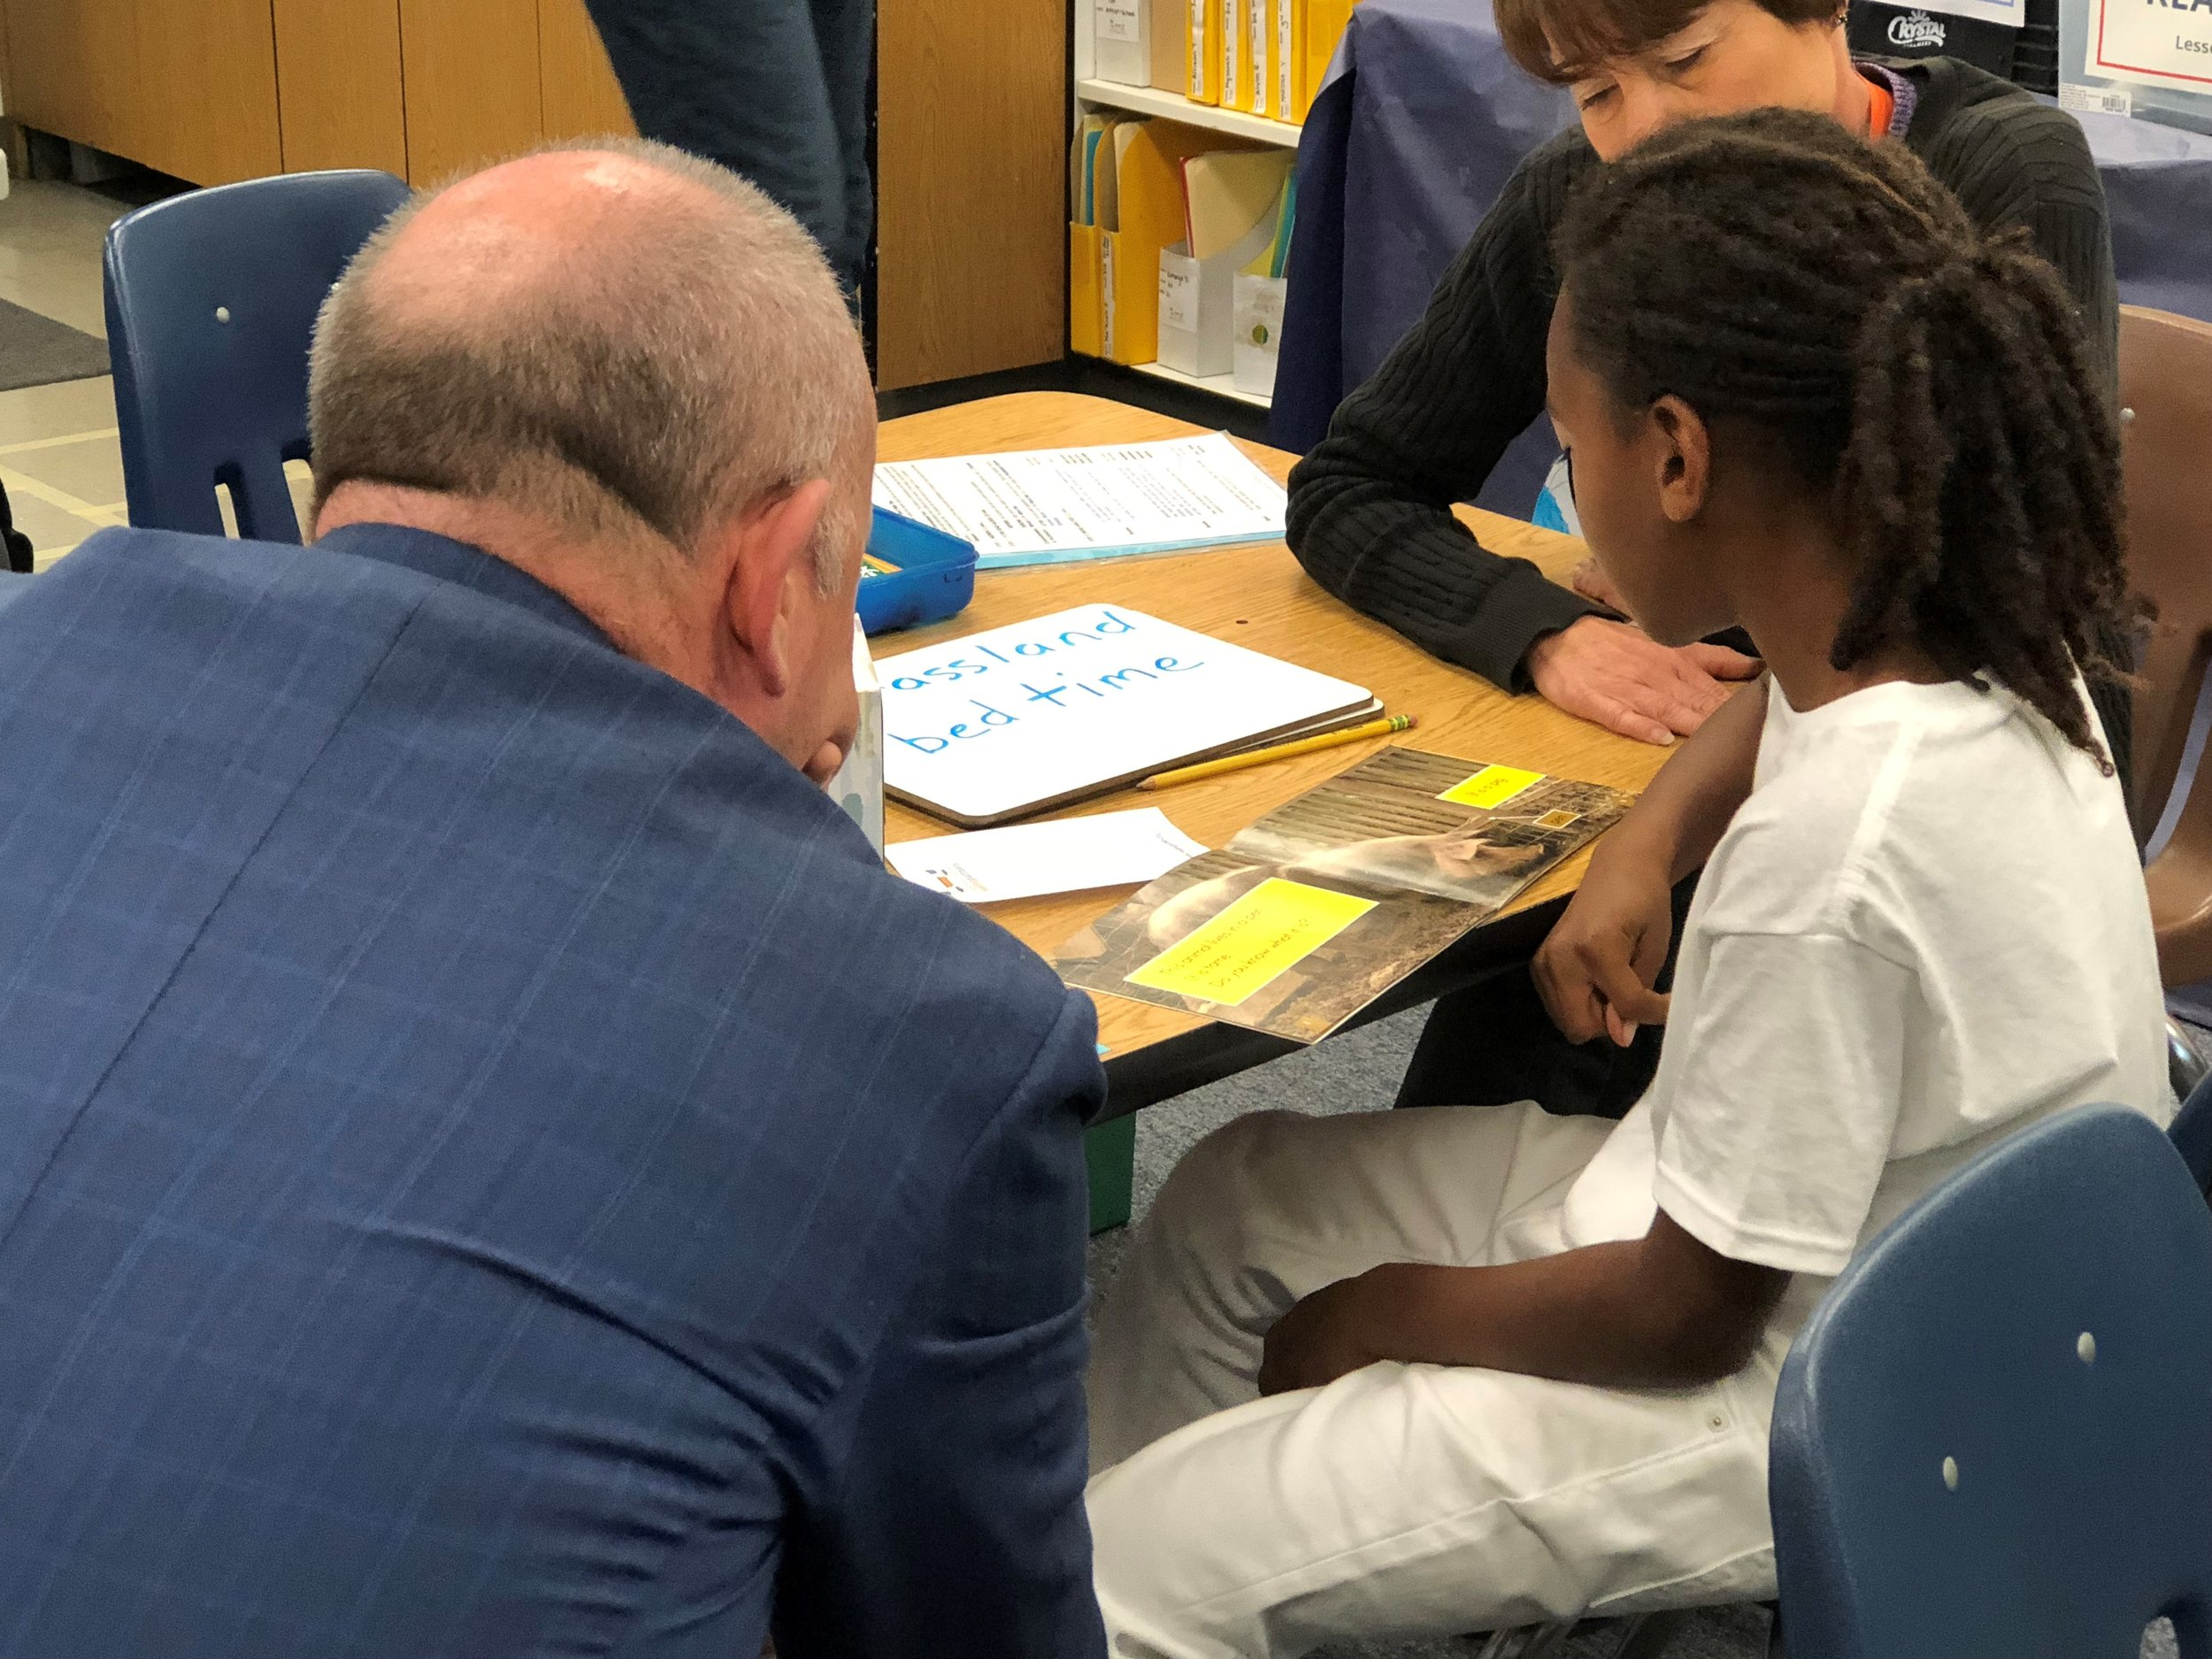 Mayor Darrell Steinberg visits with a third-grader at Parkway Elementary